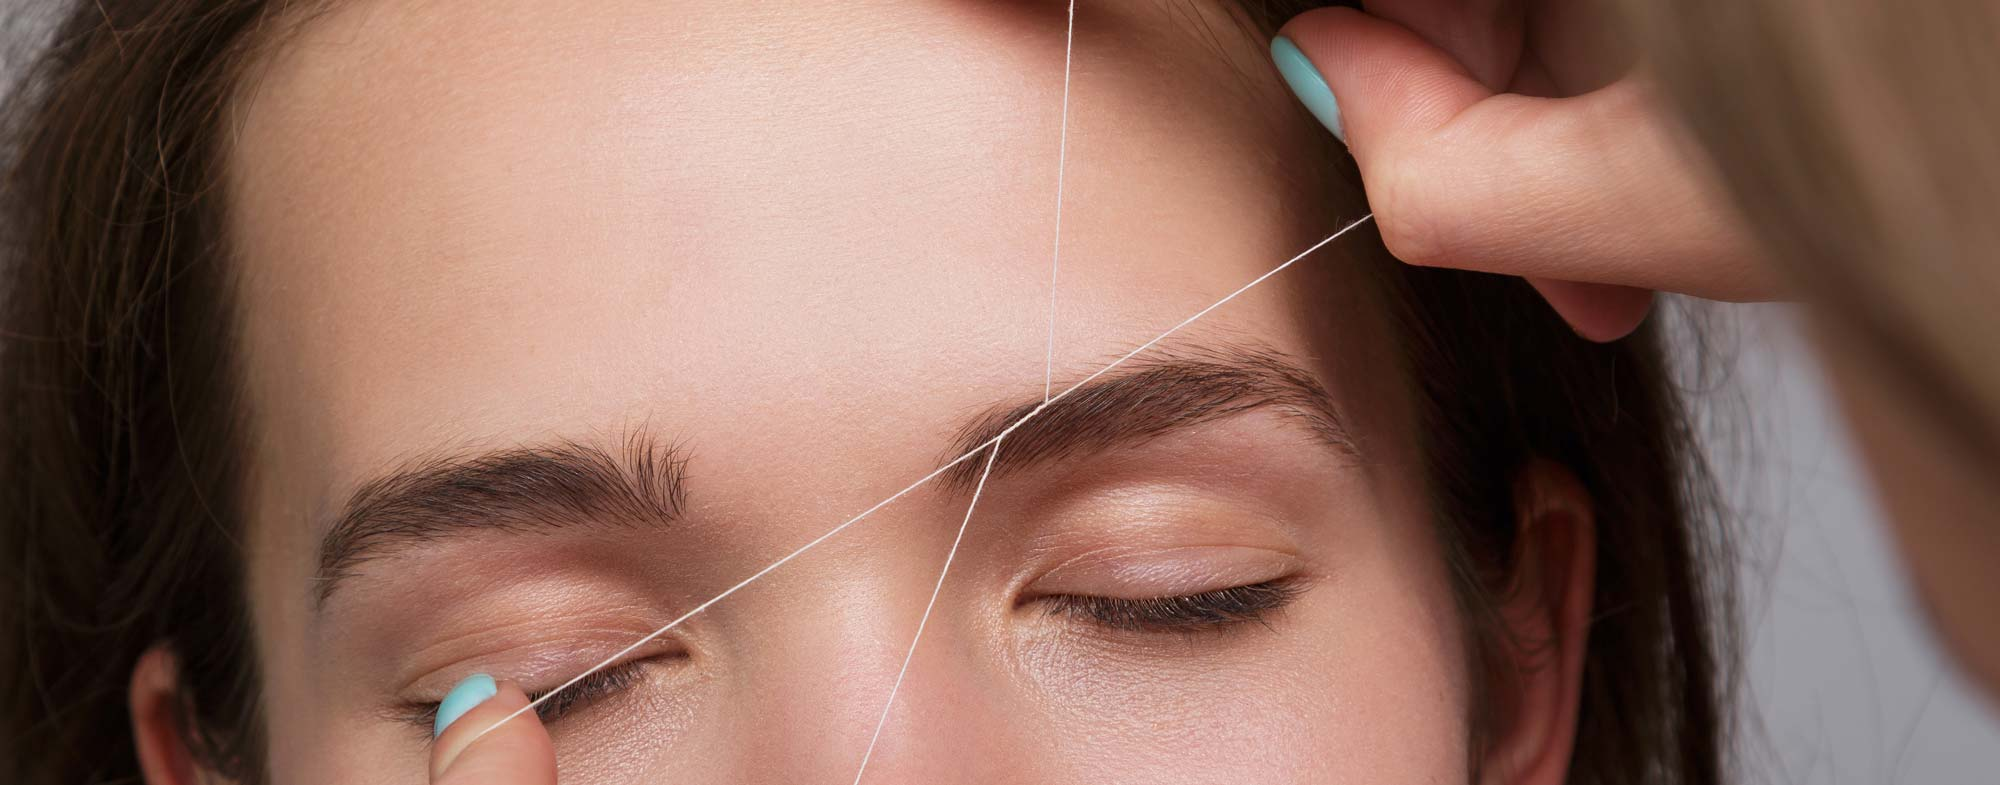 Eyebrow Threading & More